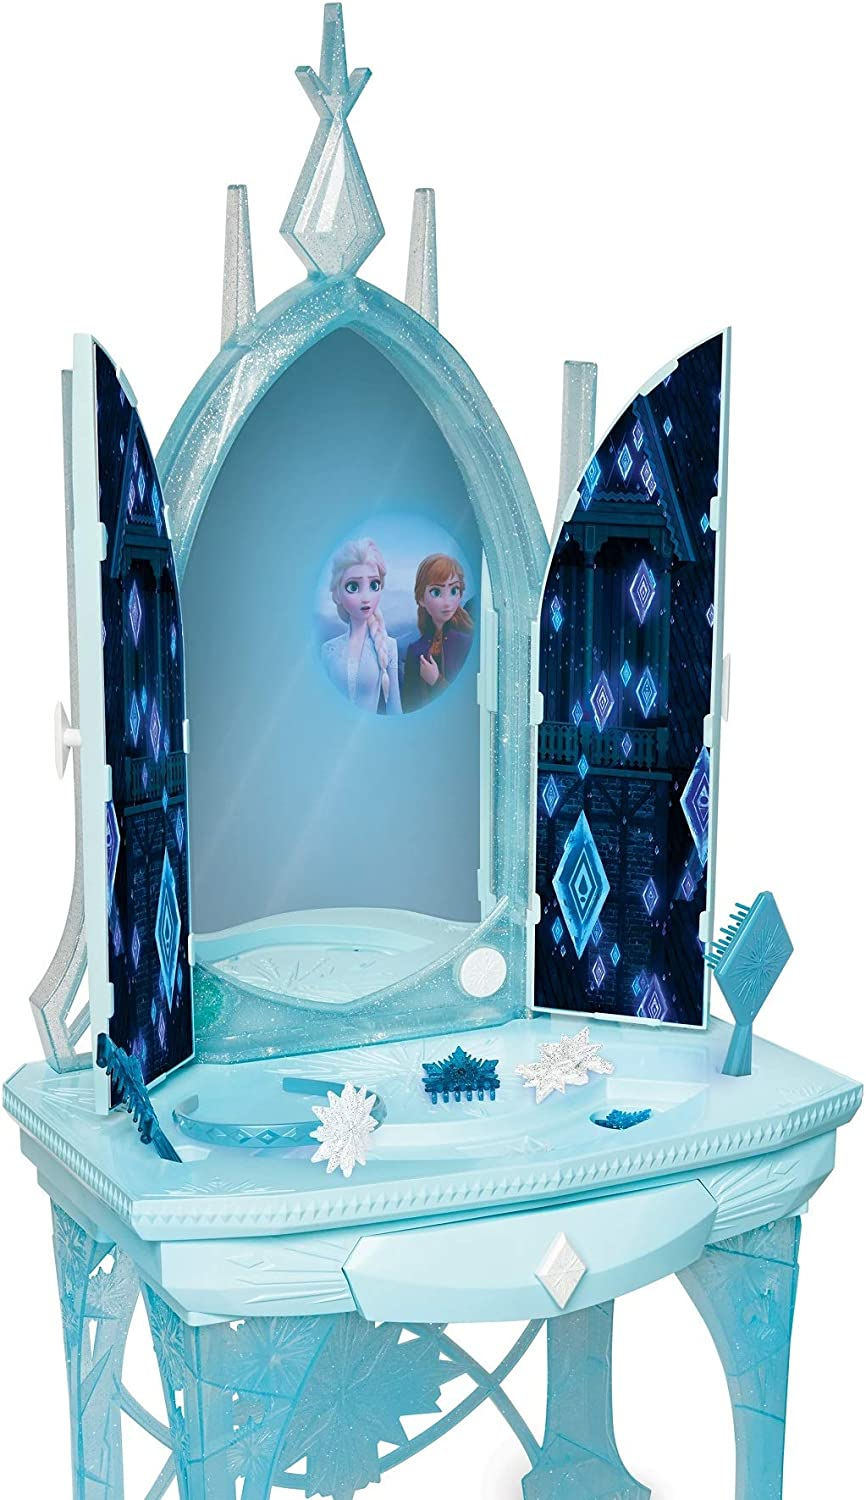 Amazon Com Disney Frozen 2 Elsa S Enchanted Ice Vanity Includes Lights Iconic Story Moments Plays Vuelie And Into The Unknown For Ages 3 Toys Games